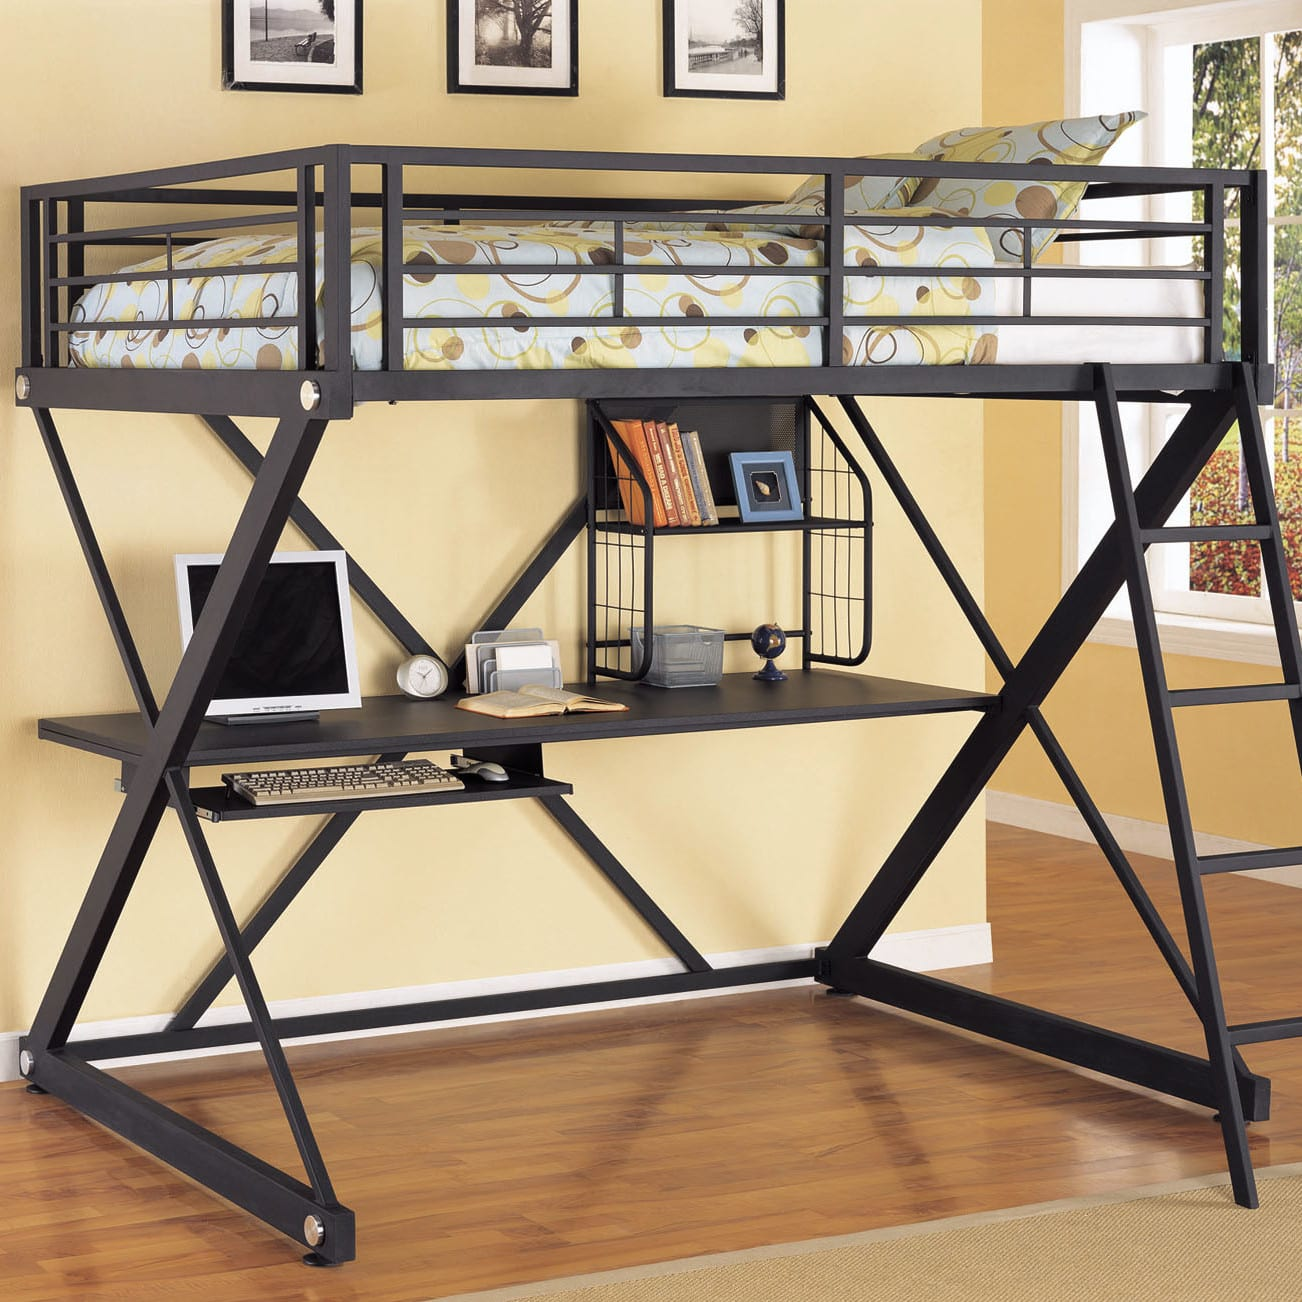 of advantages material and rug use bunk black all with books bed storage the twin loft desk for under wooden homesfeed ladder in stuffs